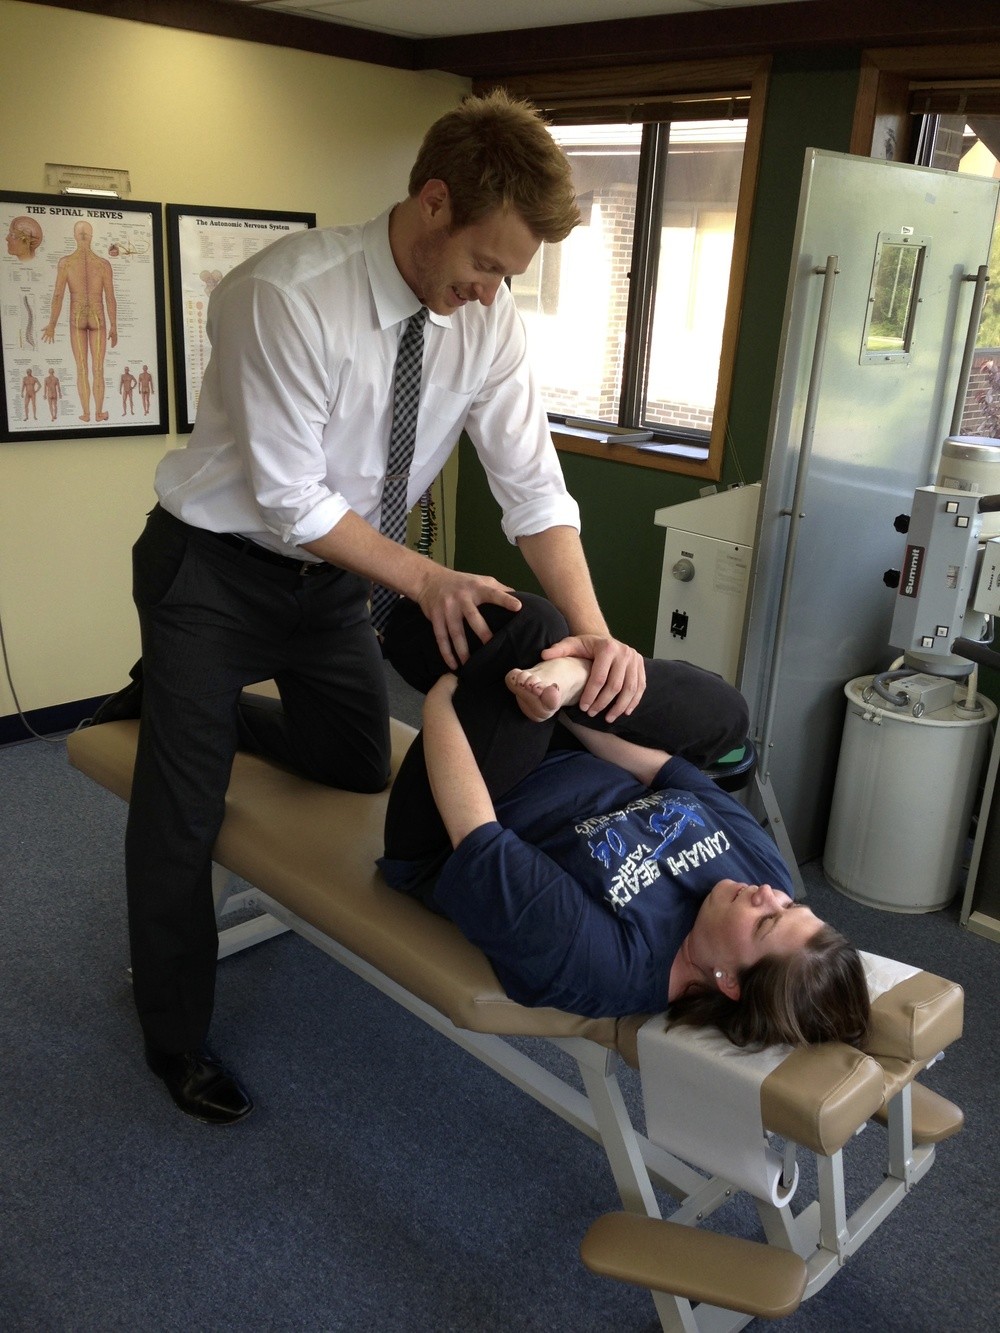 Dr. Tom stretches a patients low back